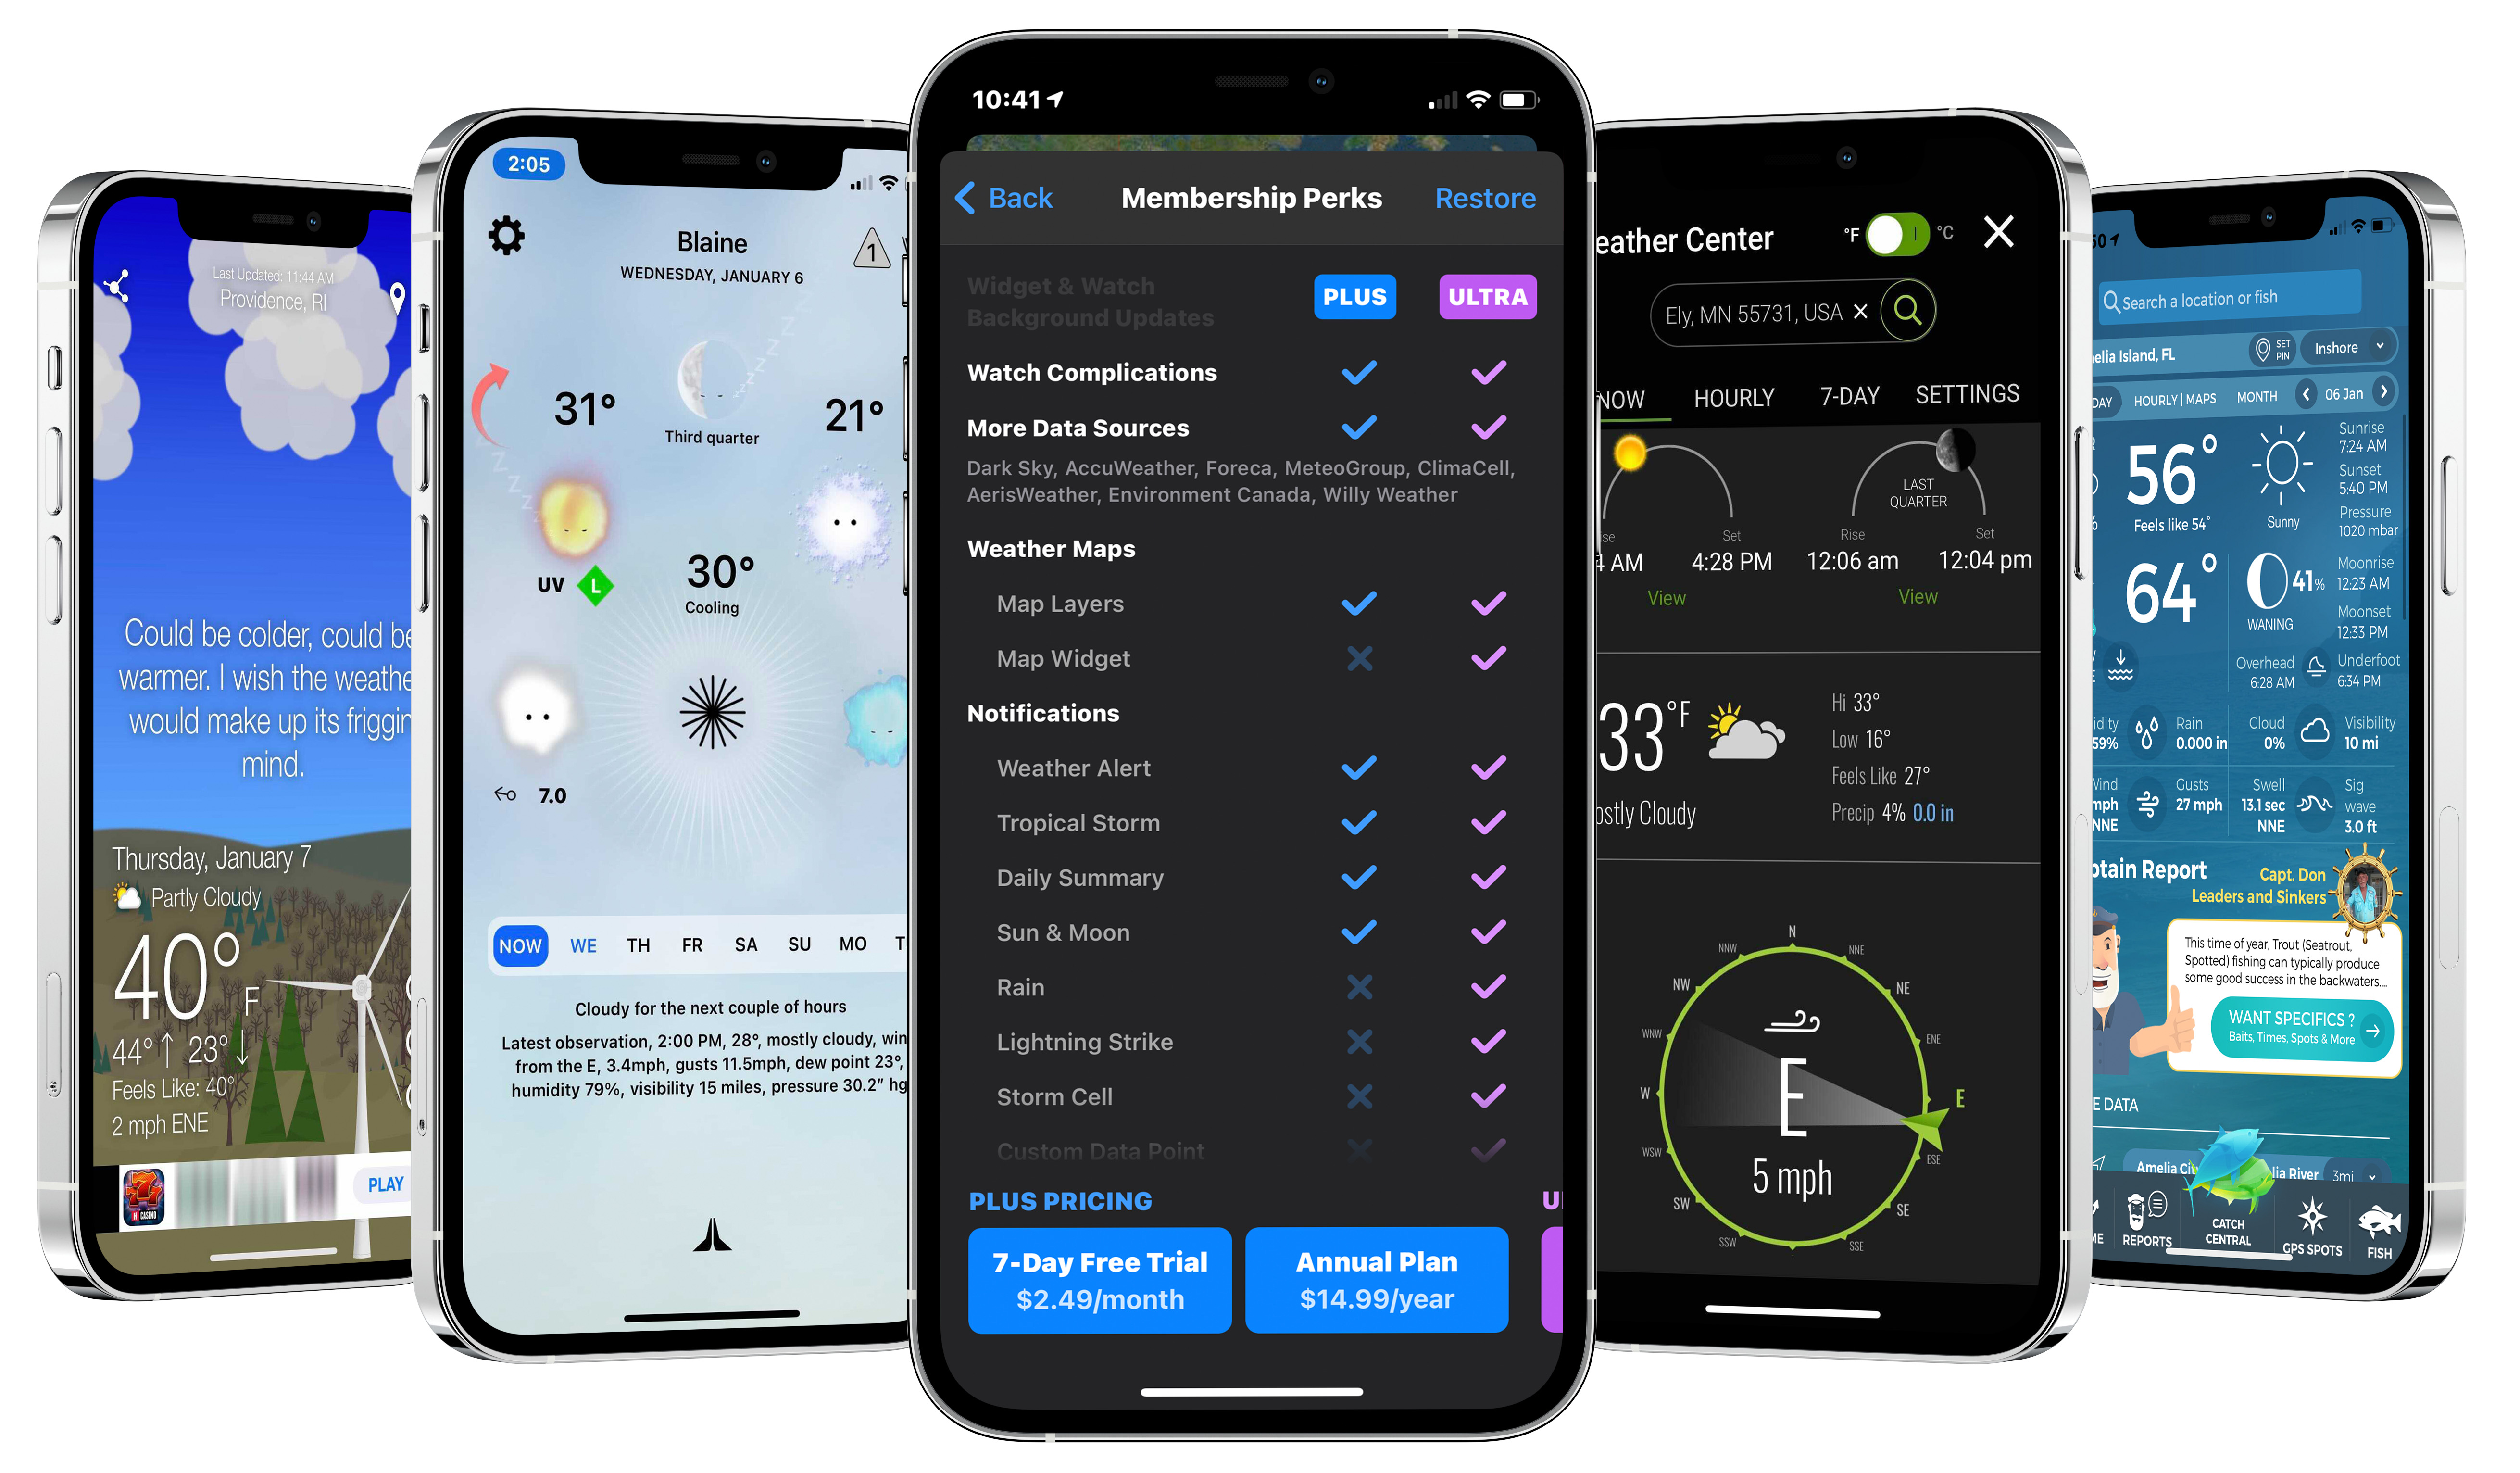 AerisWeather Data fuels countless mobile applications.